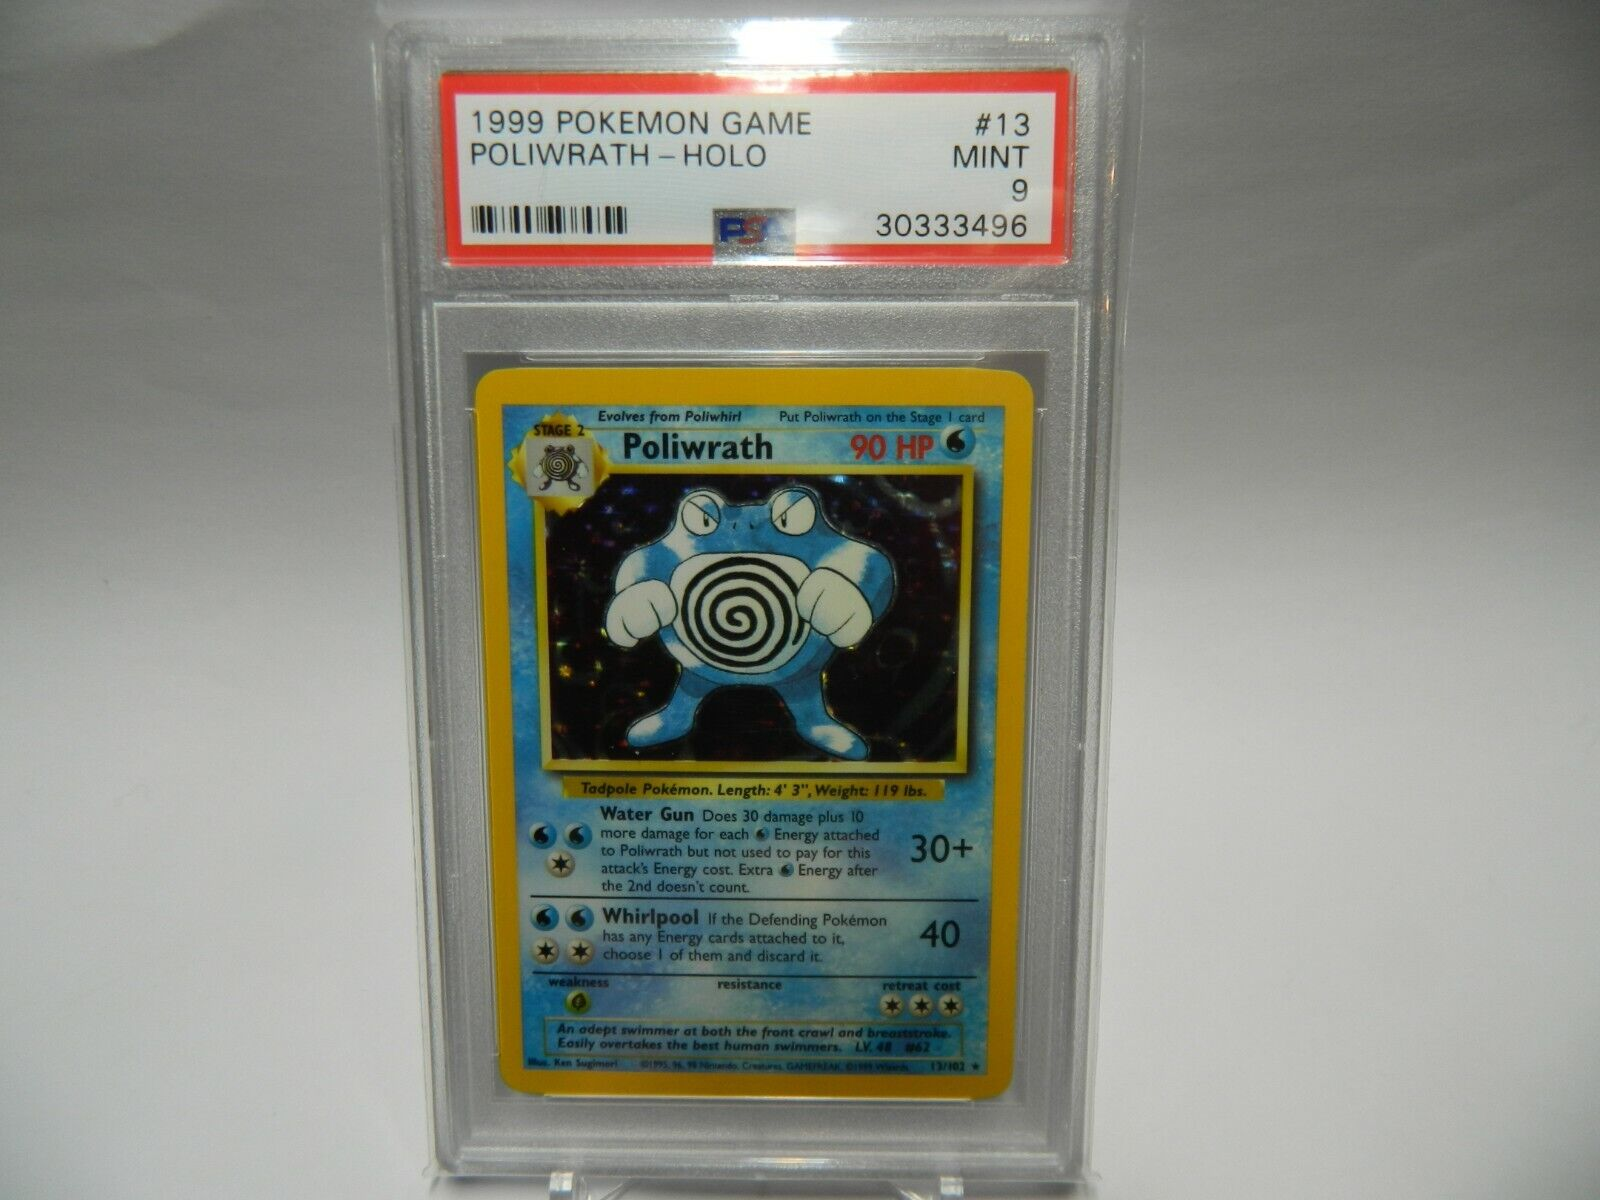 PSA 9 Mint 1999 Pokemon Base Set Poliwrath